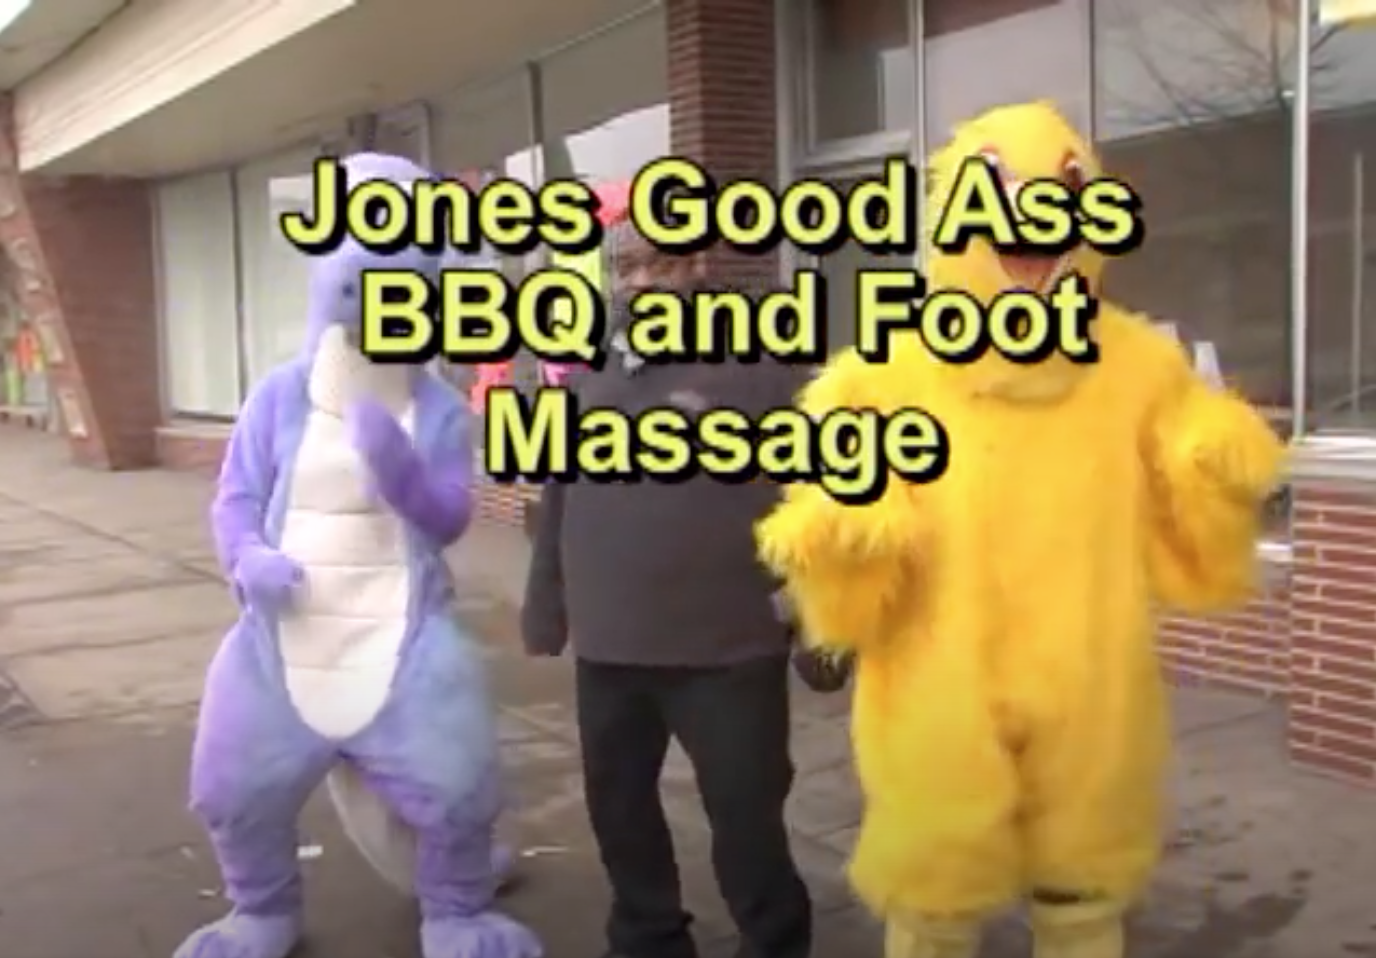 Jones Good Ass BBQ & Foot Massage